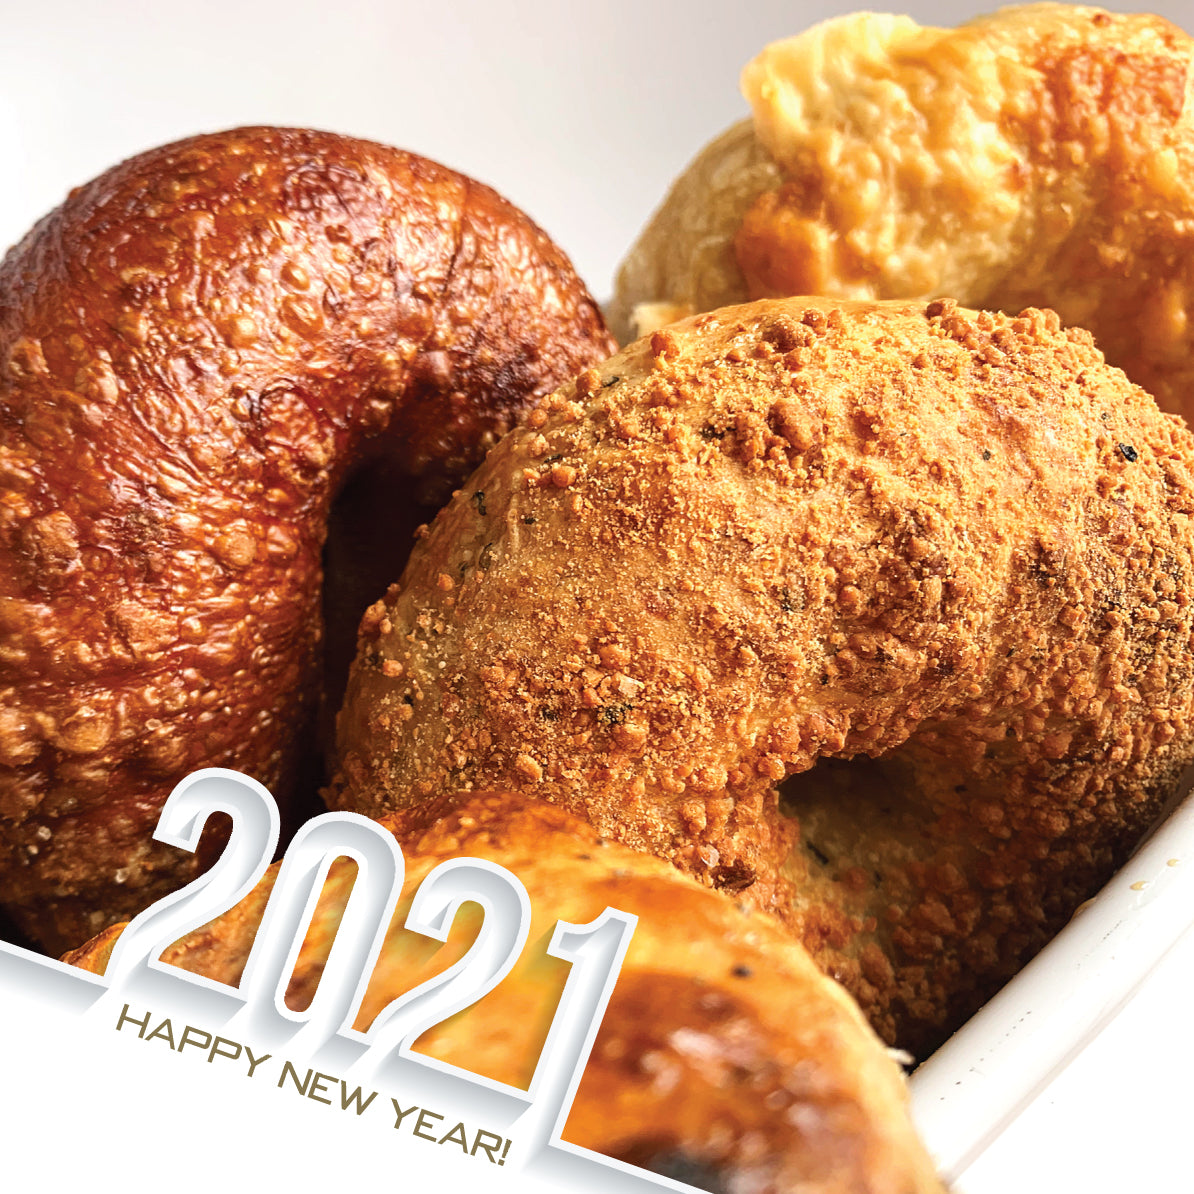 New Year's Day 2021 - Dozen Variety Pack - 10AM to 12 PM Delivery